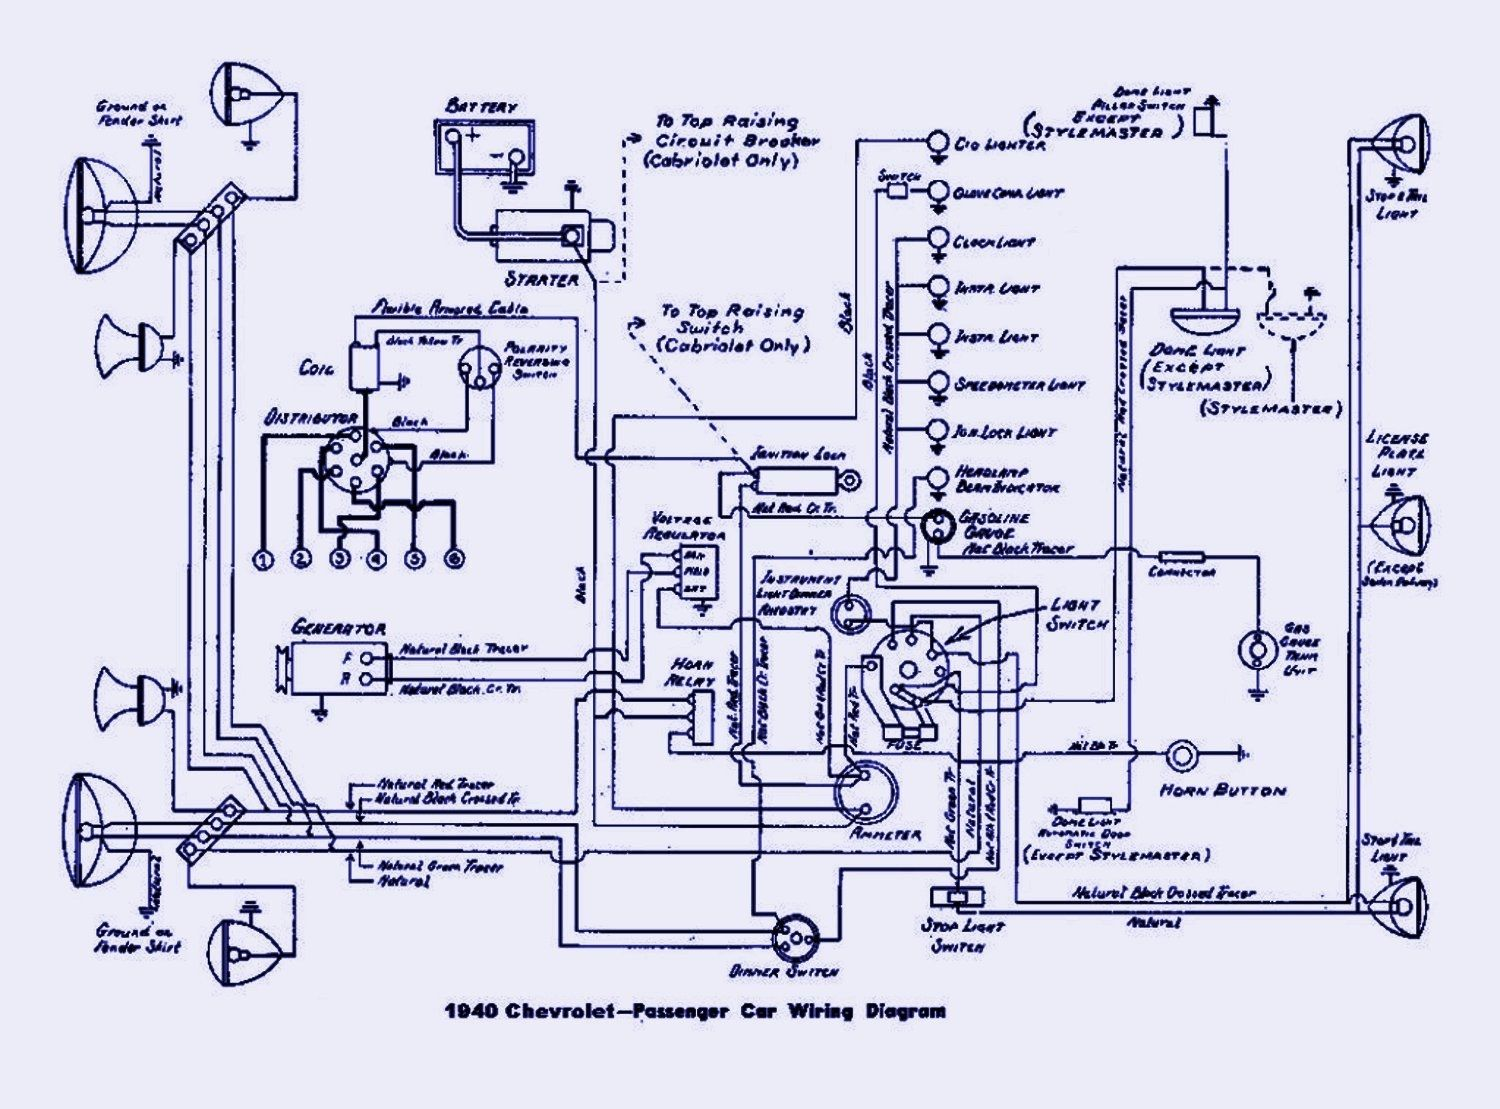 Auto Electrical Wiring Diagram Hastalavista throughout